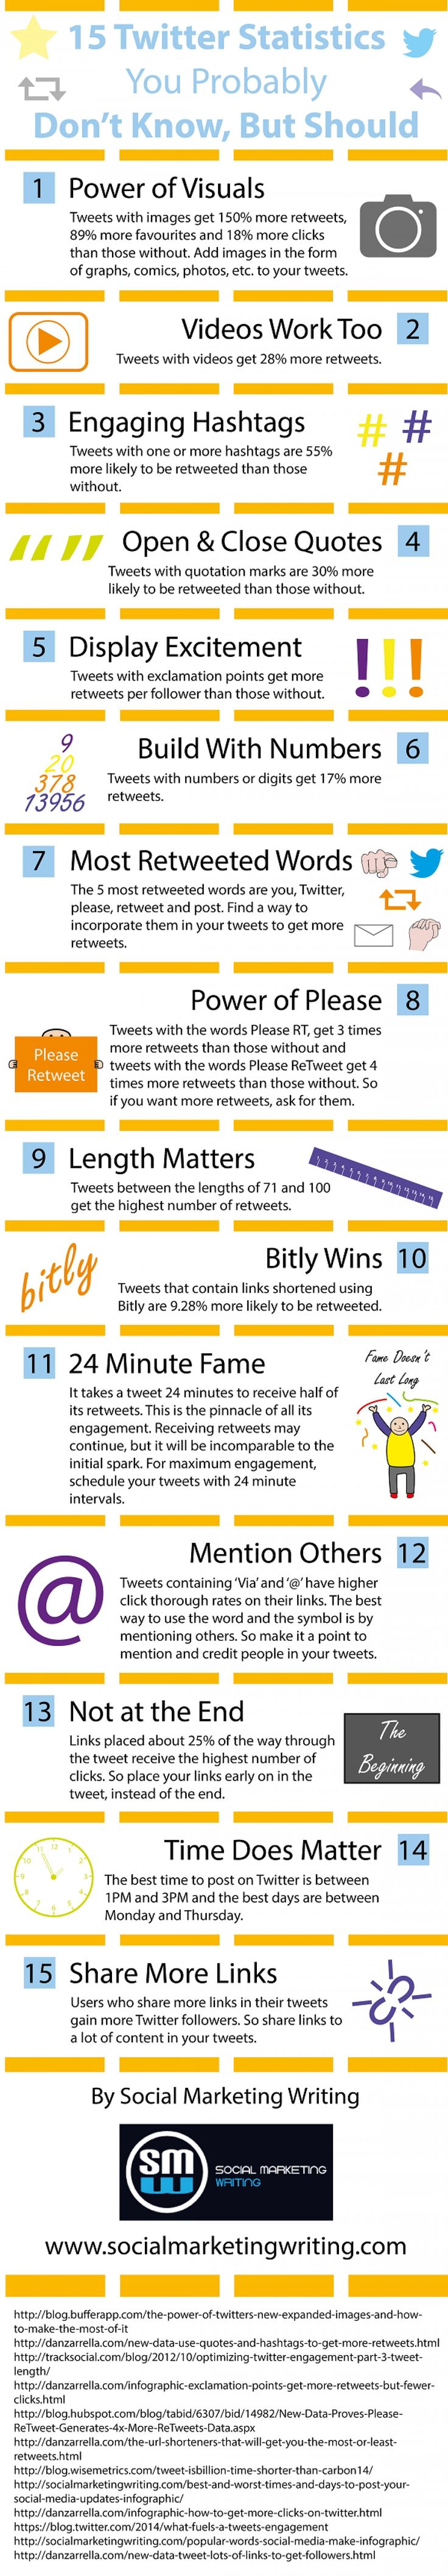 15 Twitter Statistics You Probably Don't Know, But Should #Infographic